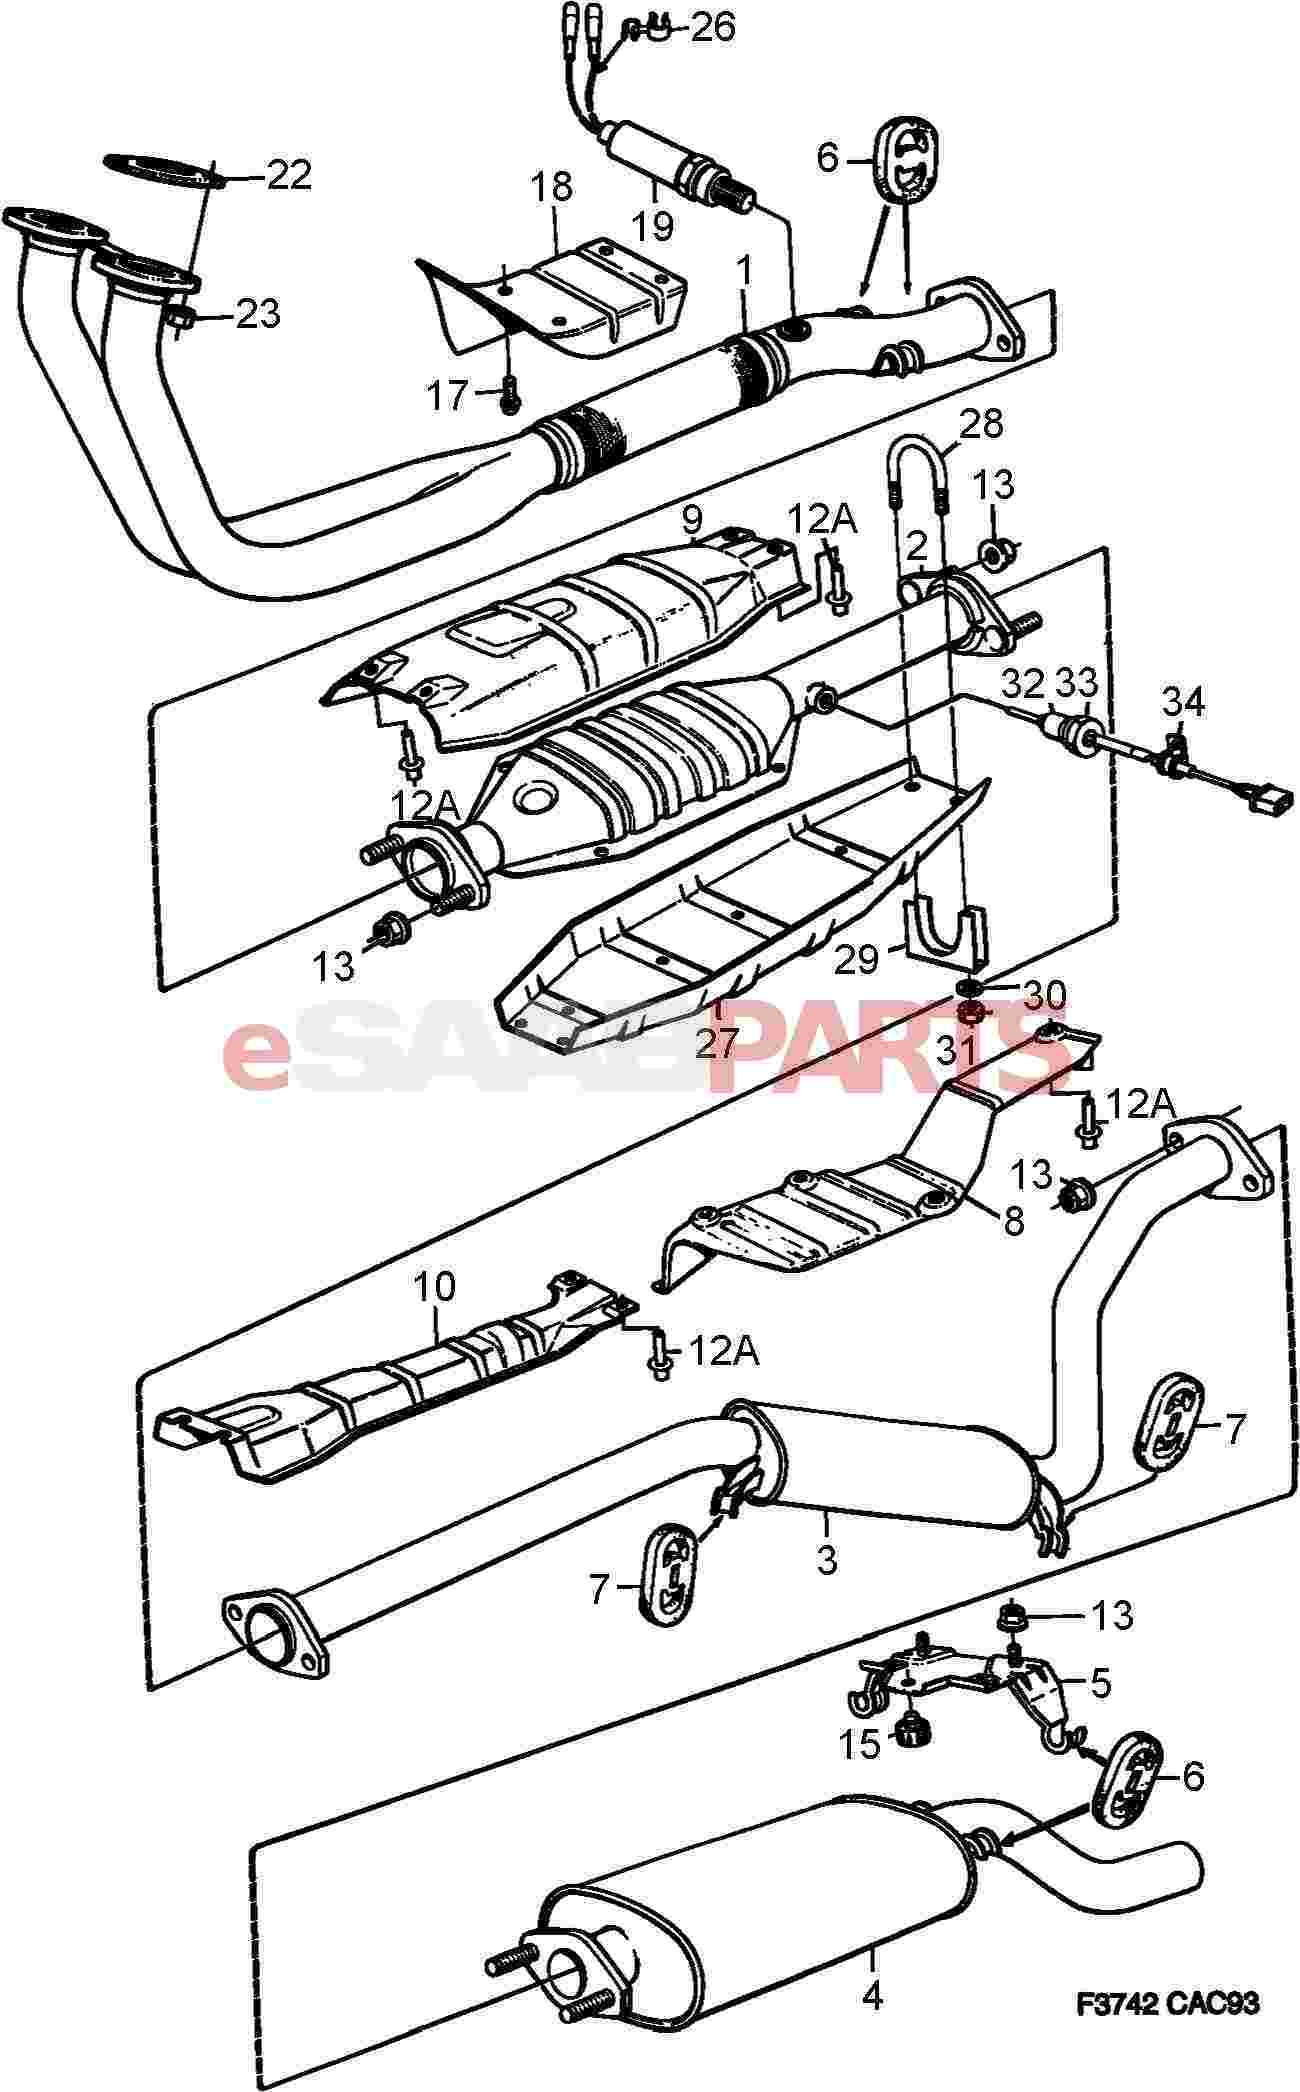 11900429 saab nut genuine saab parts from esaabparts com rh esaabparts com saab 93 exhaust diagram saab 9000 exhaust system diagram